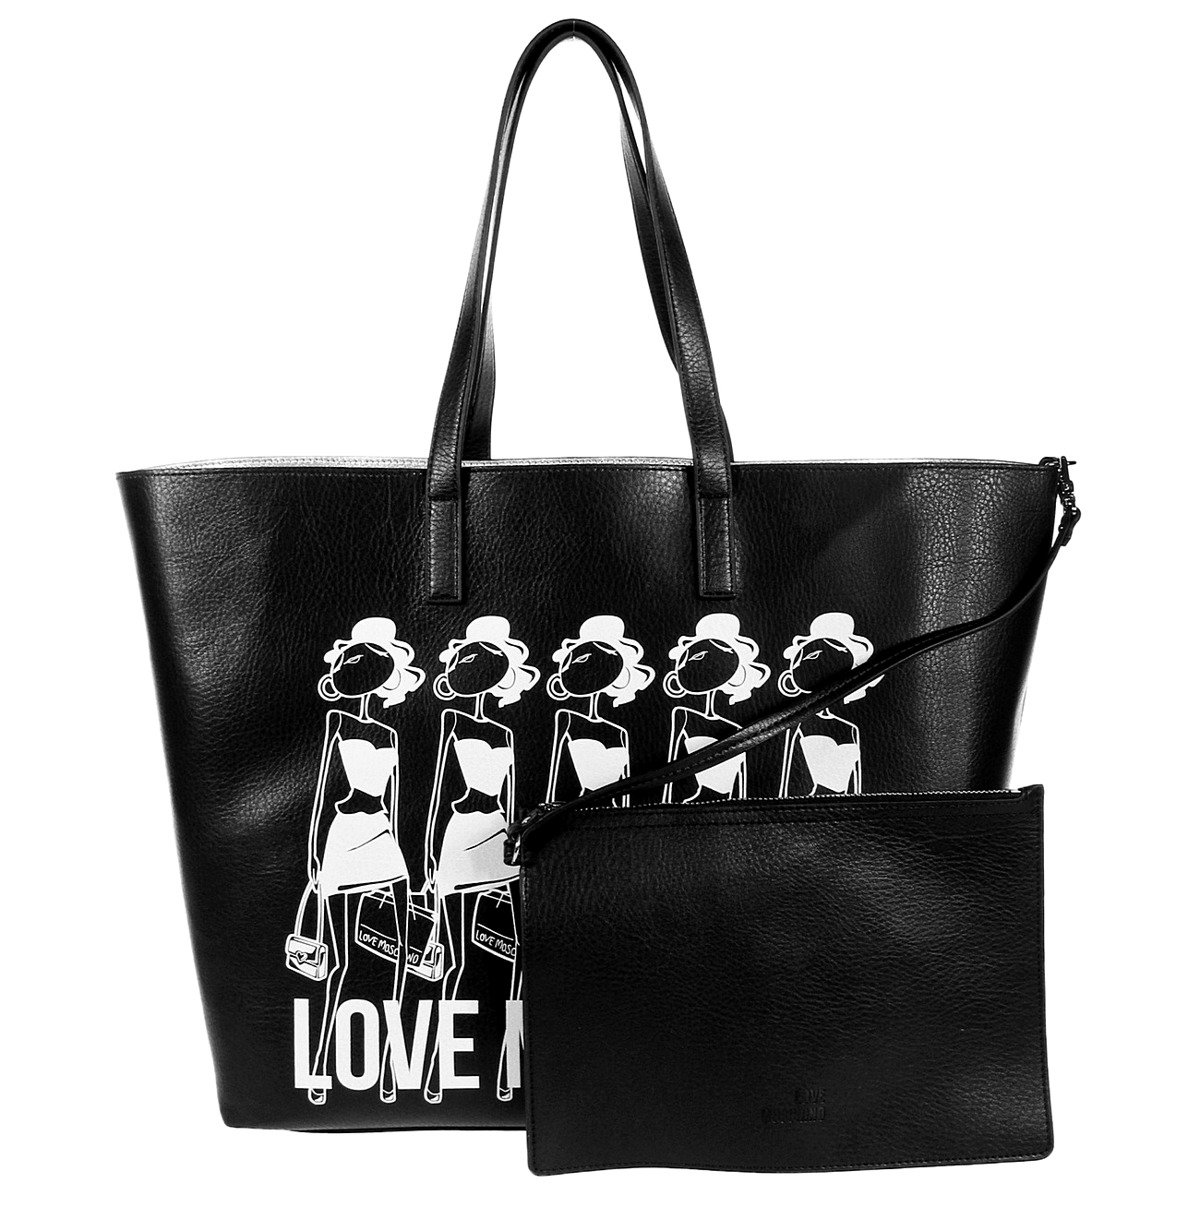 love moschino jc4308pp01kt0000 damen women shopper bag tasche purse schwarz schwarz damen. Black Bedroom Furniture Sets. Home Design Ideas